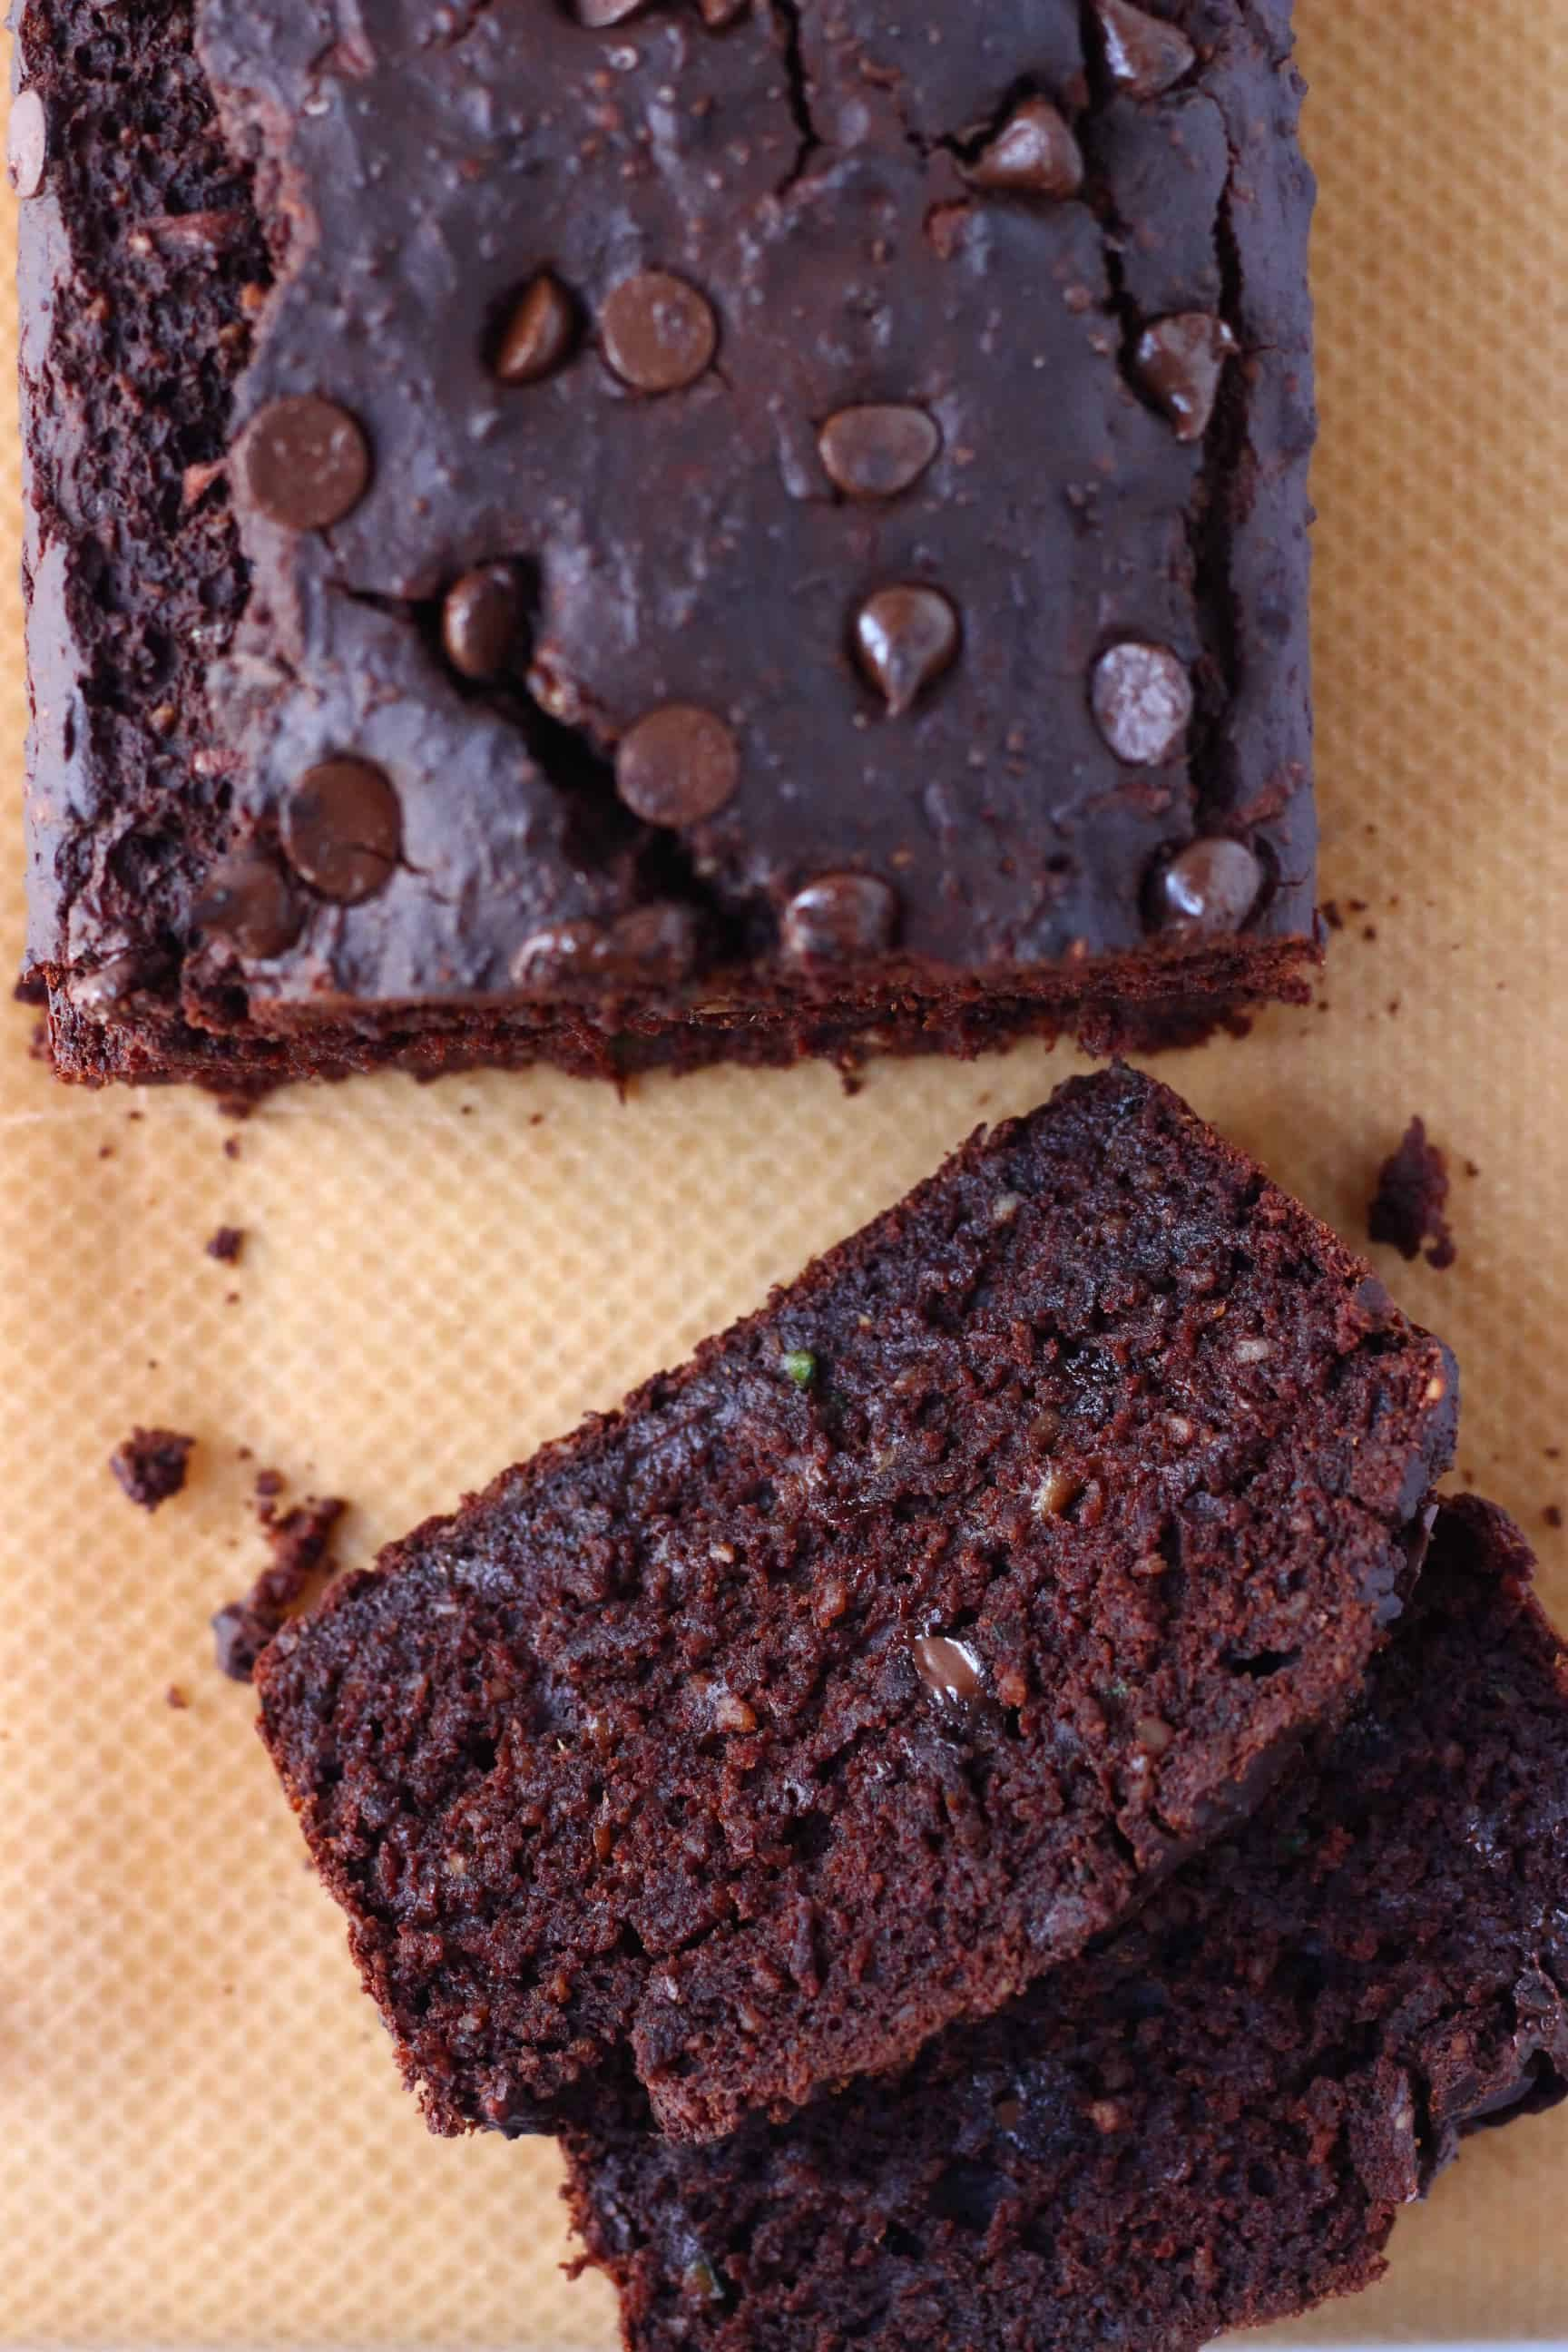 A loaf of gluten-free vegan chocolate zucchini bread studded with chocolate chips with two slices next to it